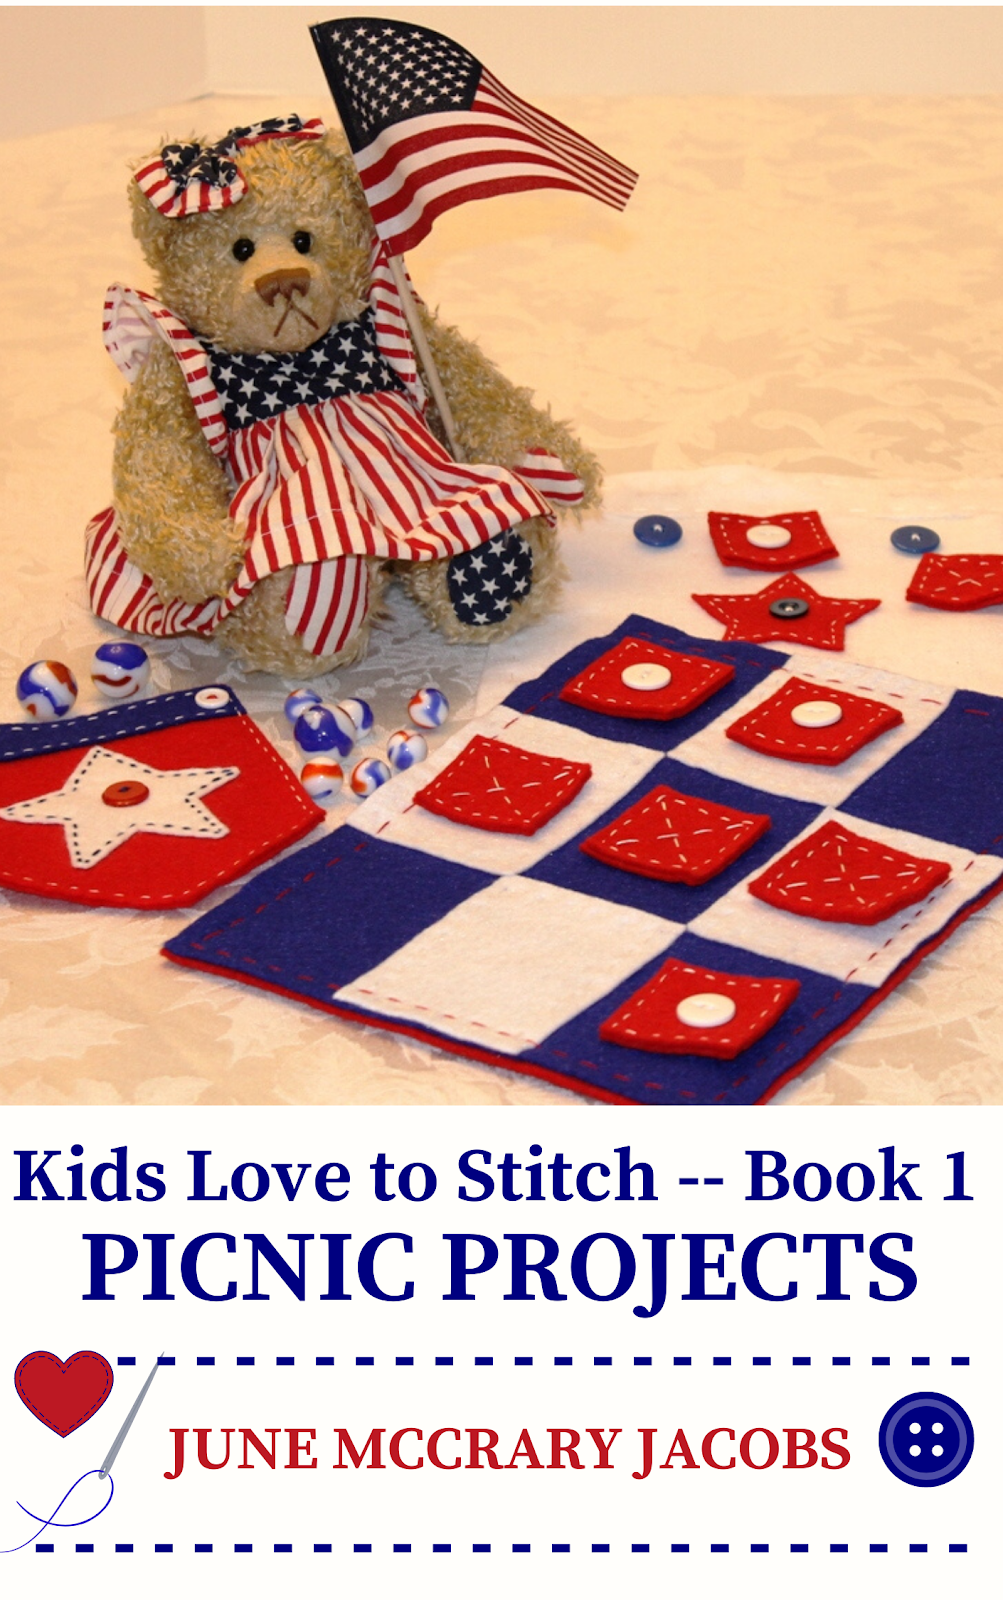 FIND 'KIDS LOVE TO STITCH - BOOK 1:  PICNIC PROJECTS' ON AMAZON.